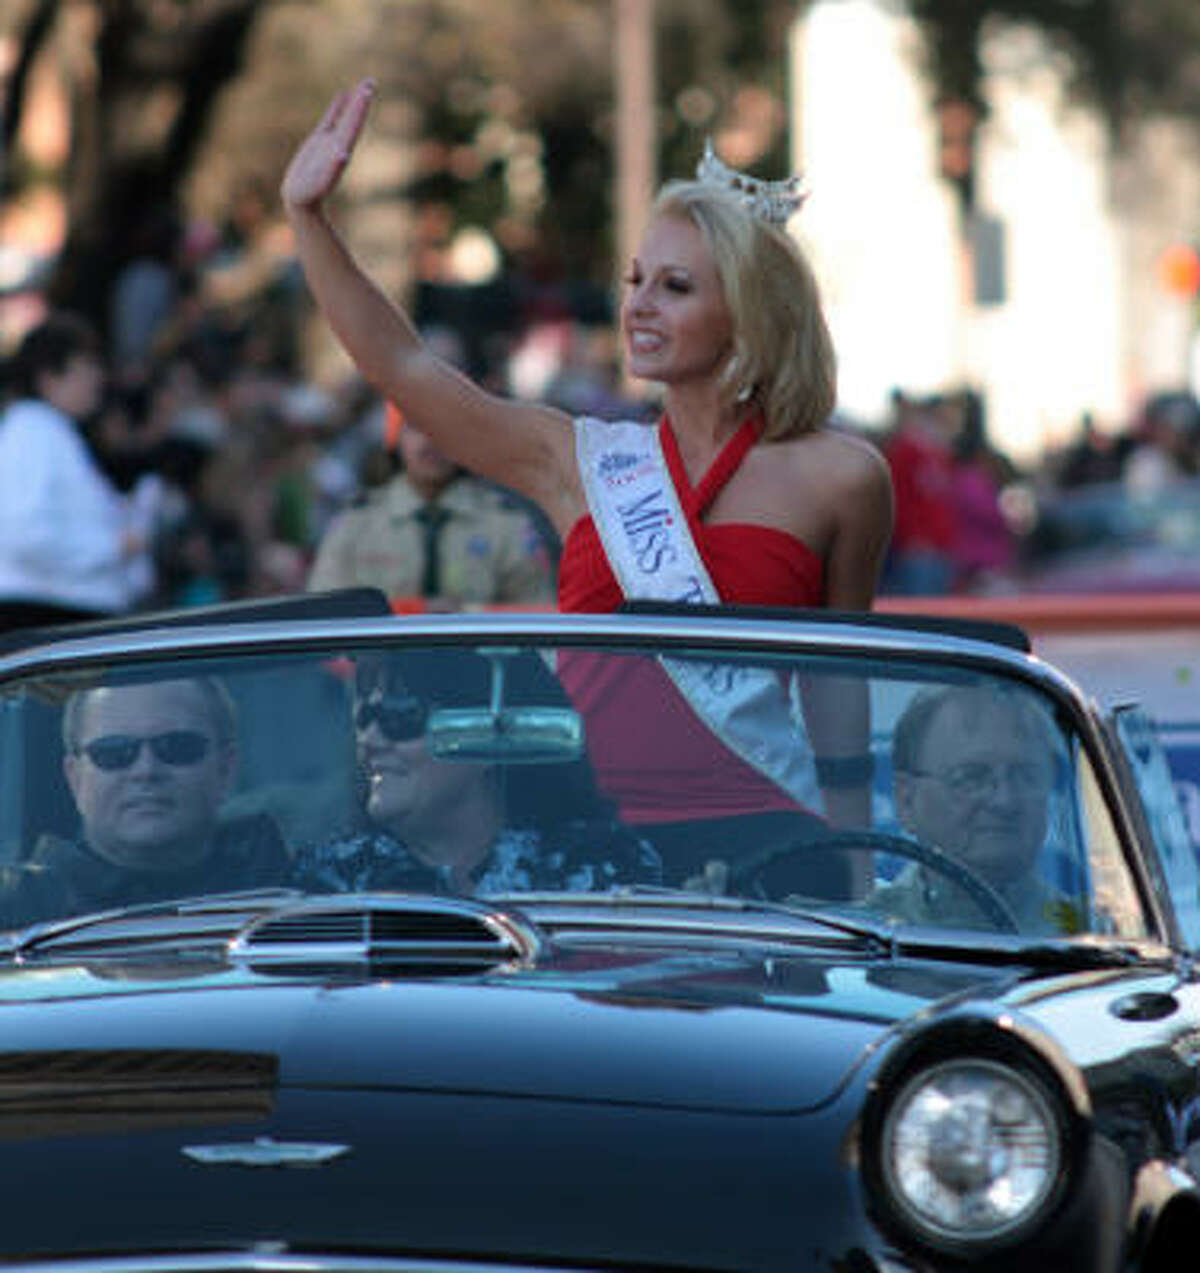 Rebecca Robinson, Miss Texas 2008, waves to the crowd during the Comerica Bank New Years Parade on Jauary 1, 2009.